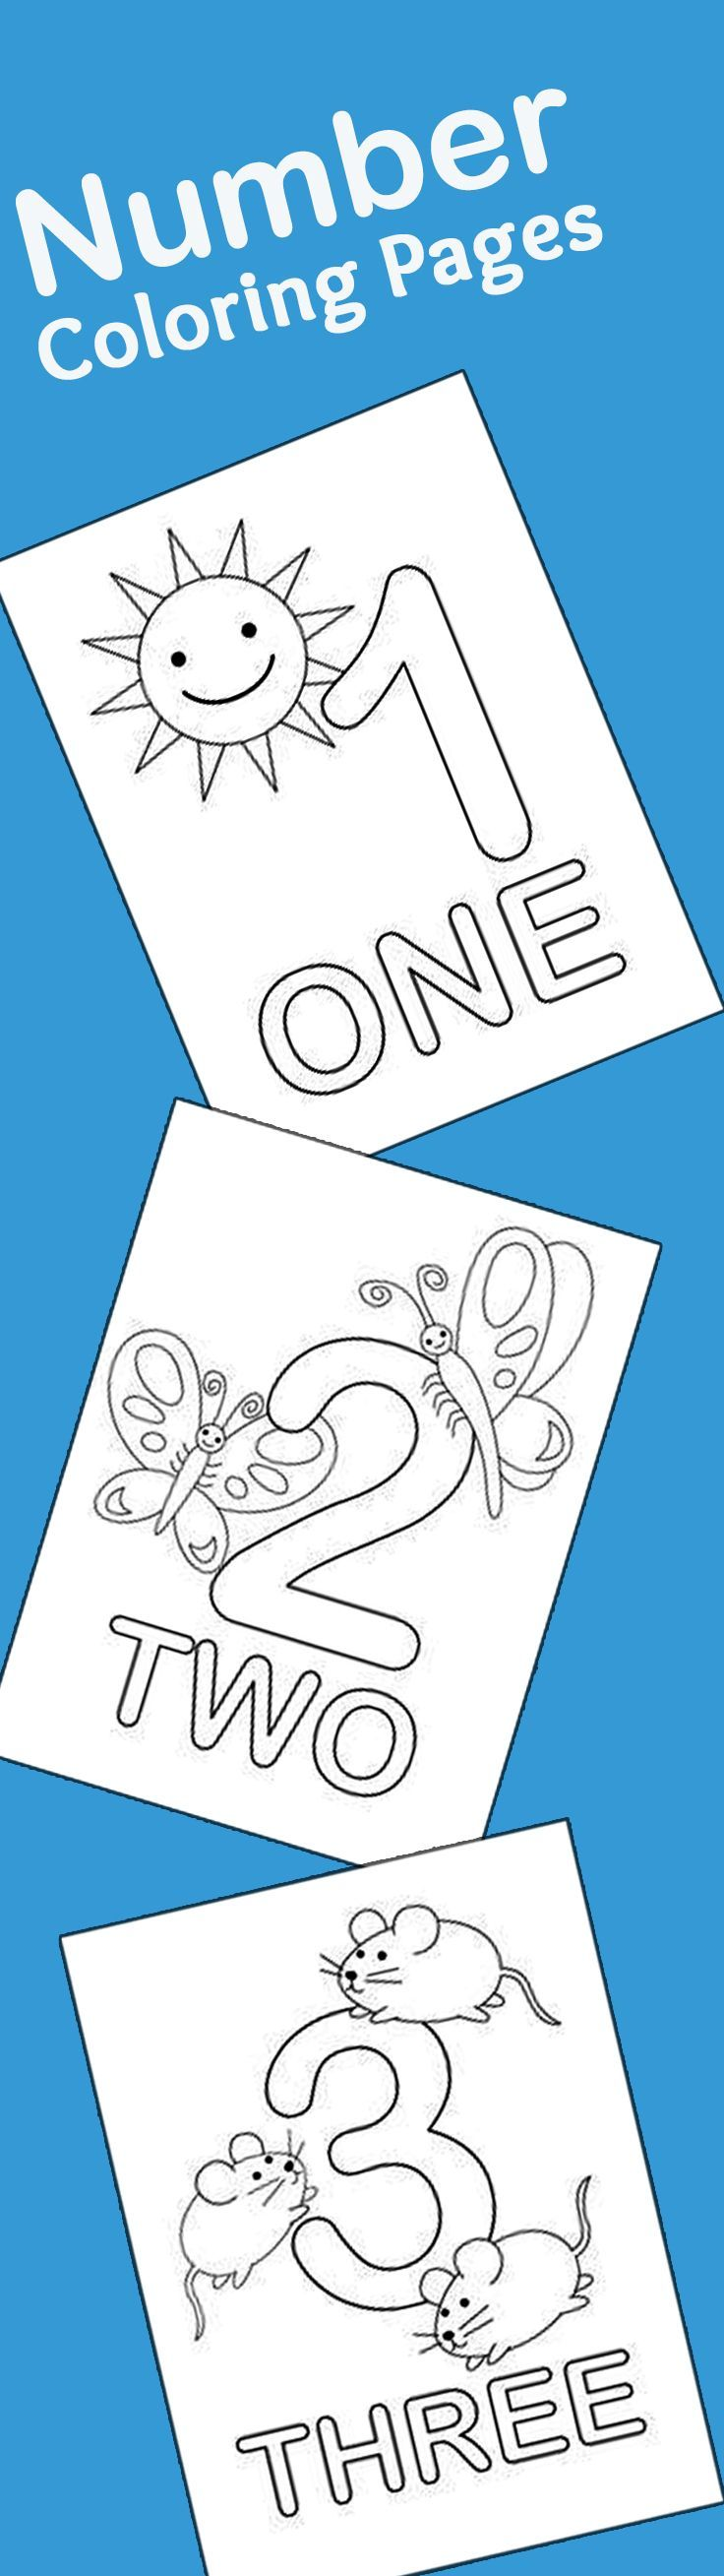 Colouring pages you can colour online - Top 21 Free Printable Number Coloring Pages Online